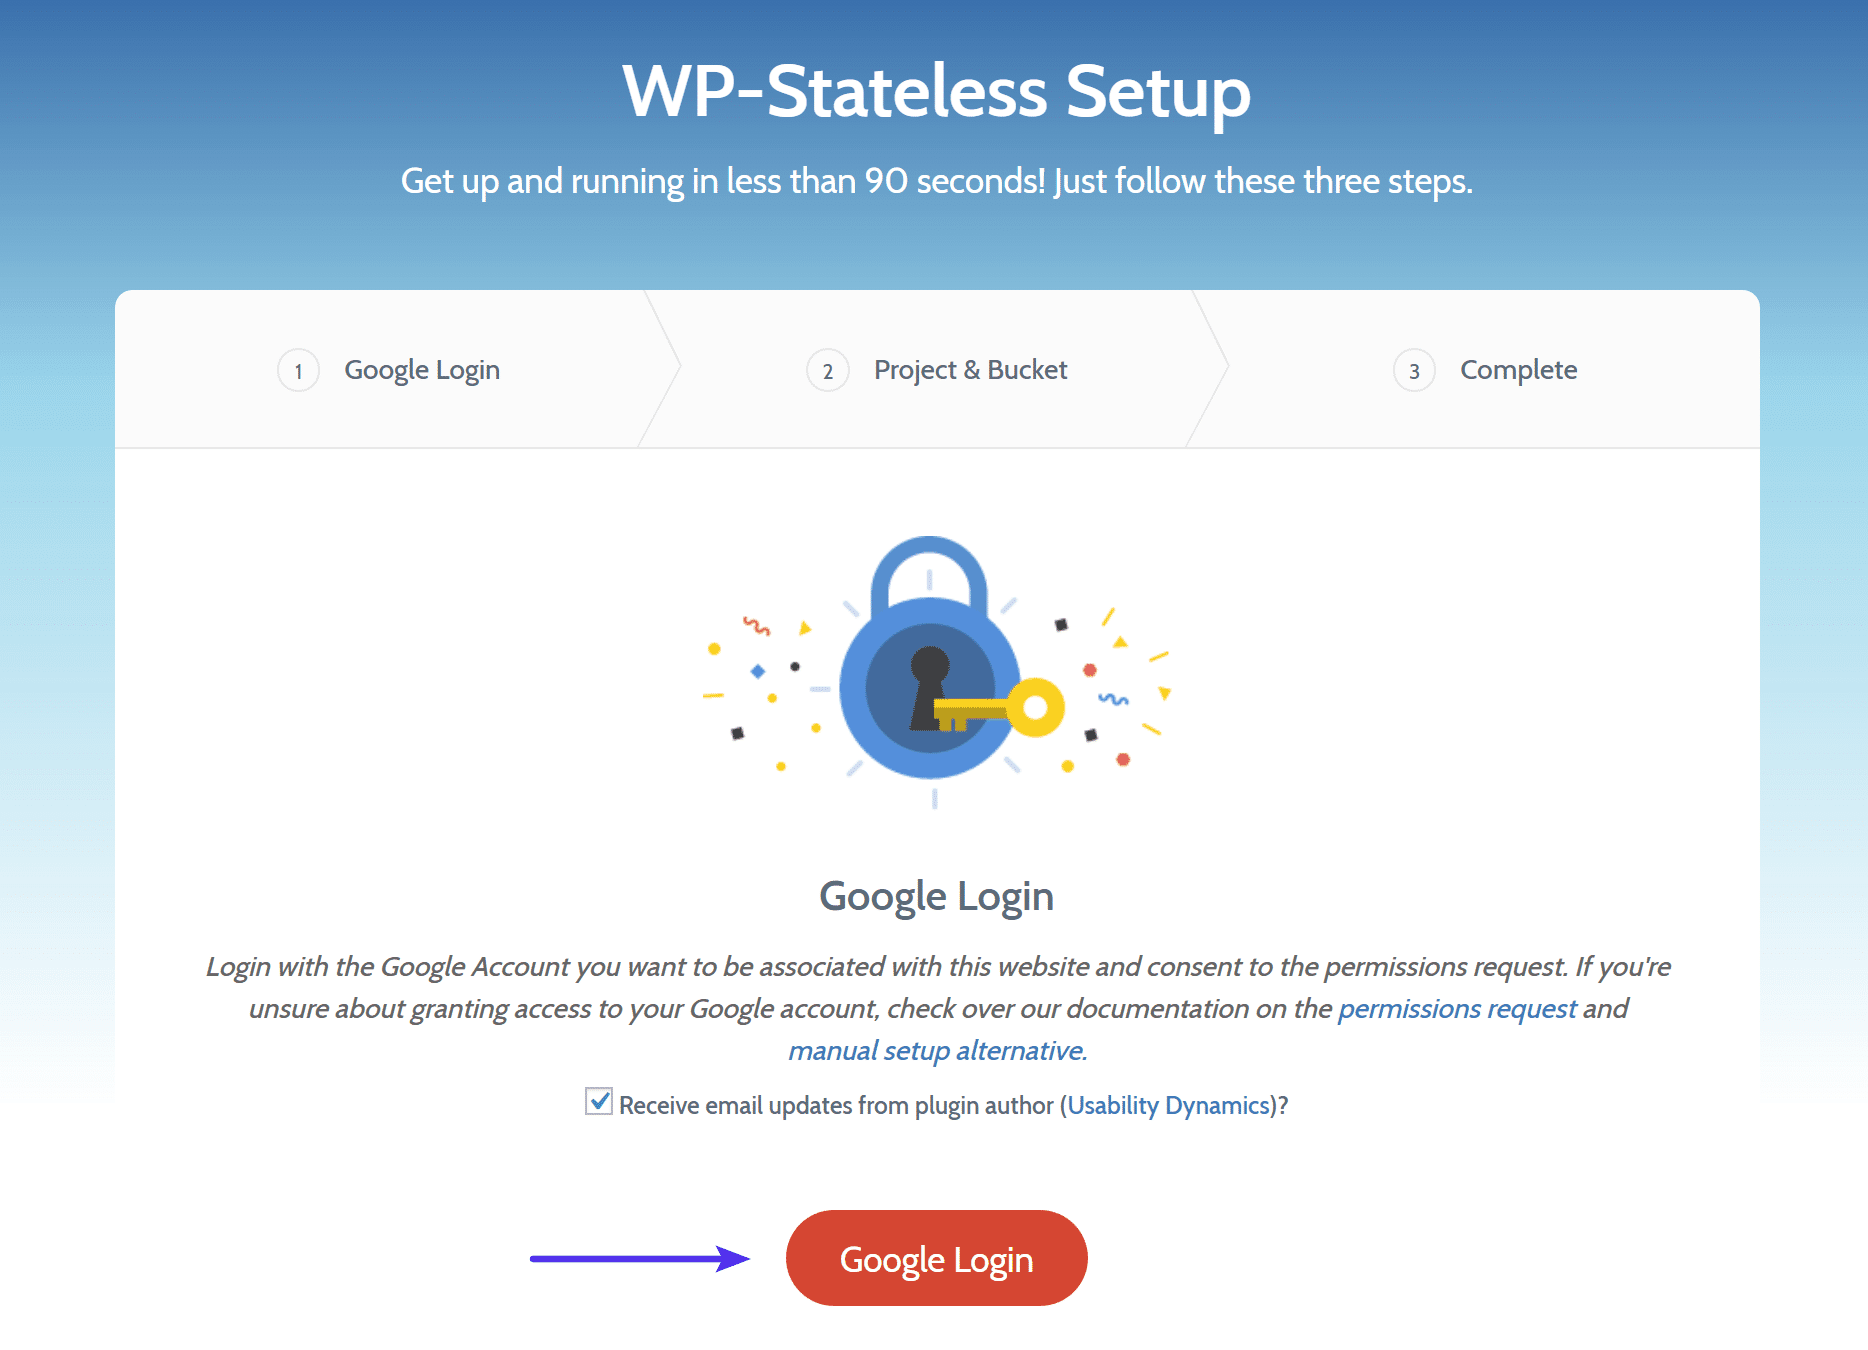 Google login in WP-Stateless